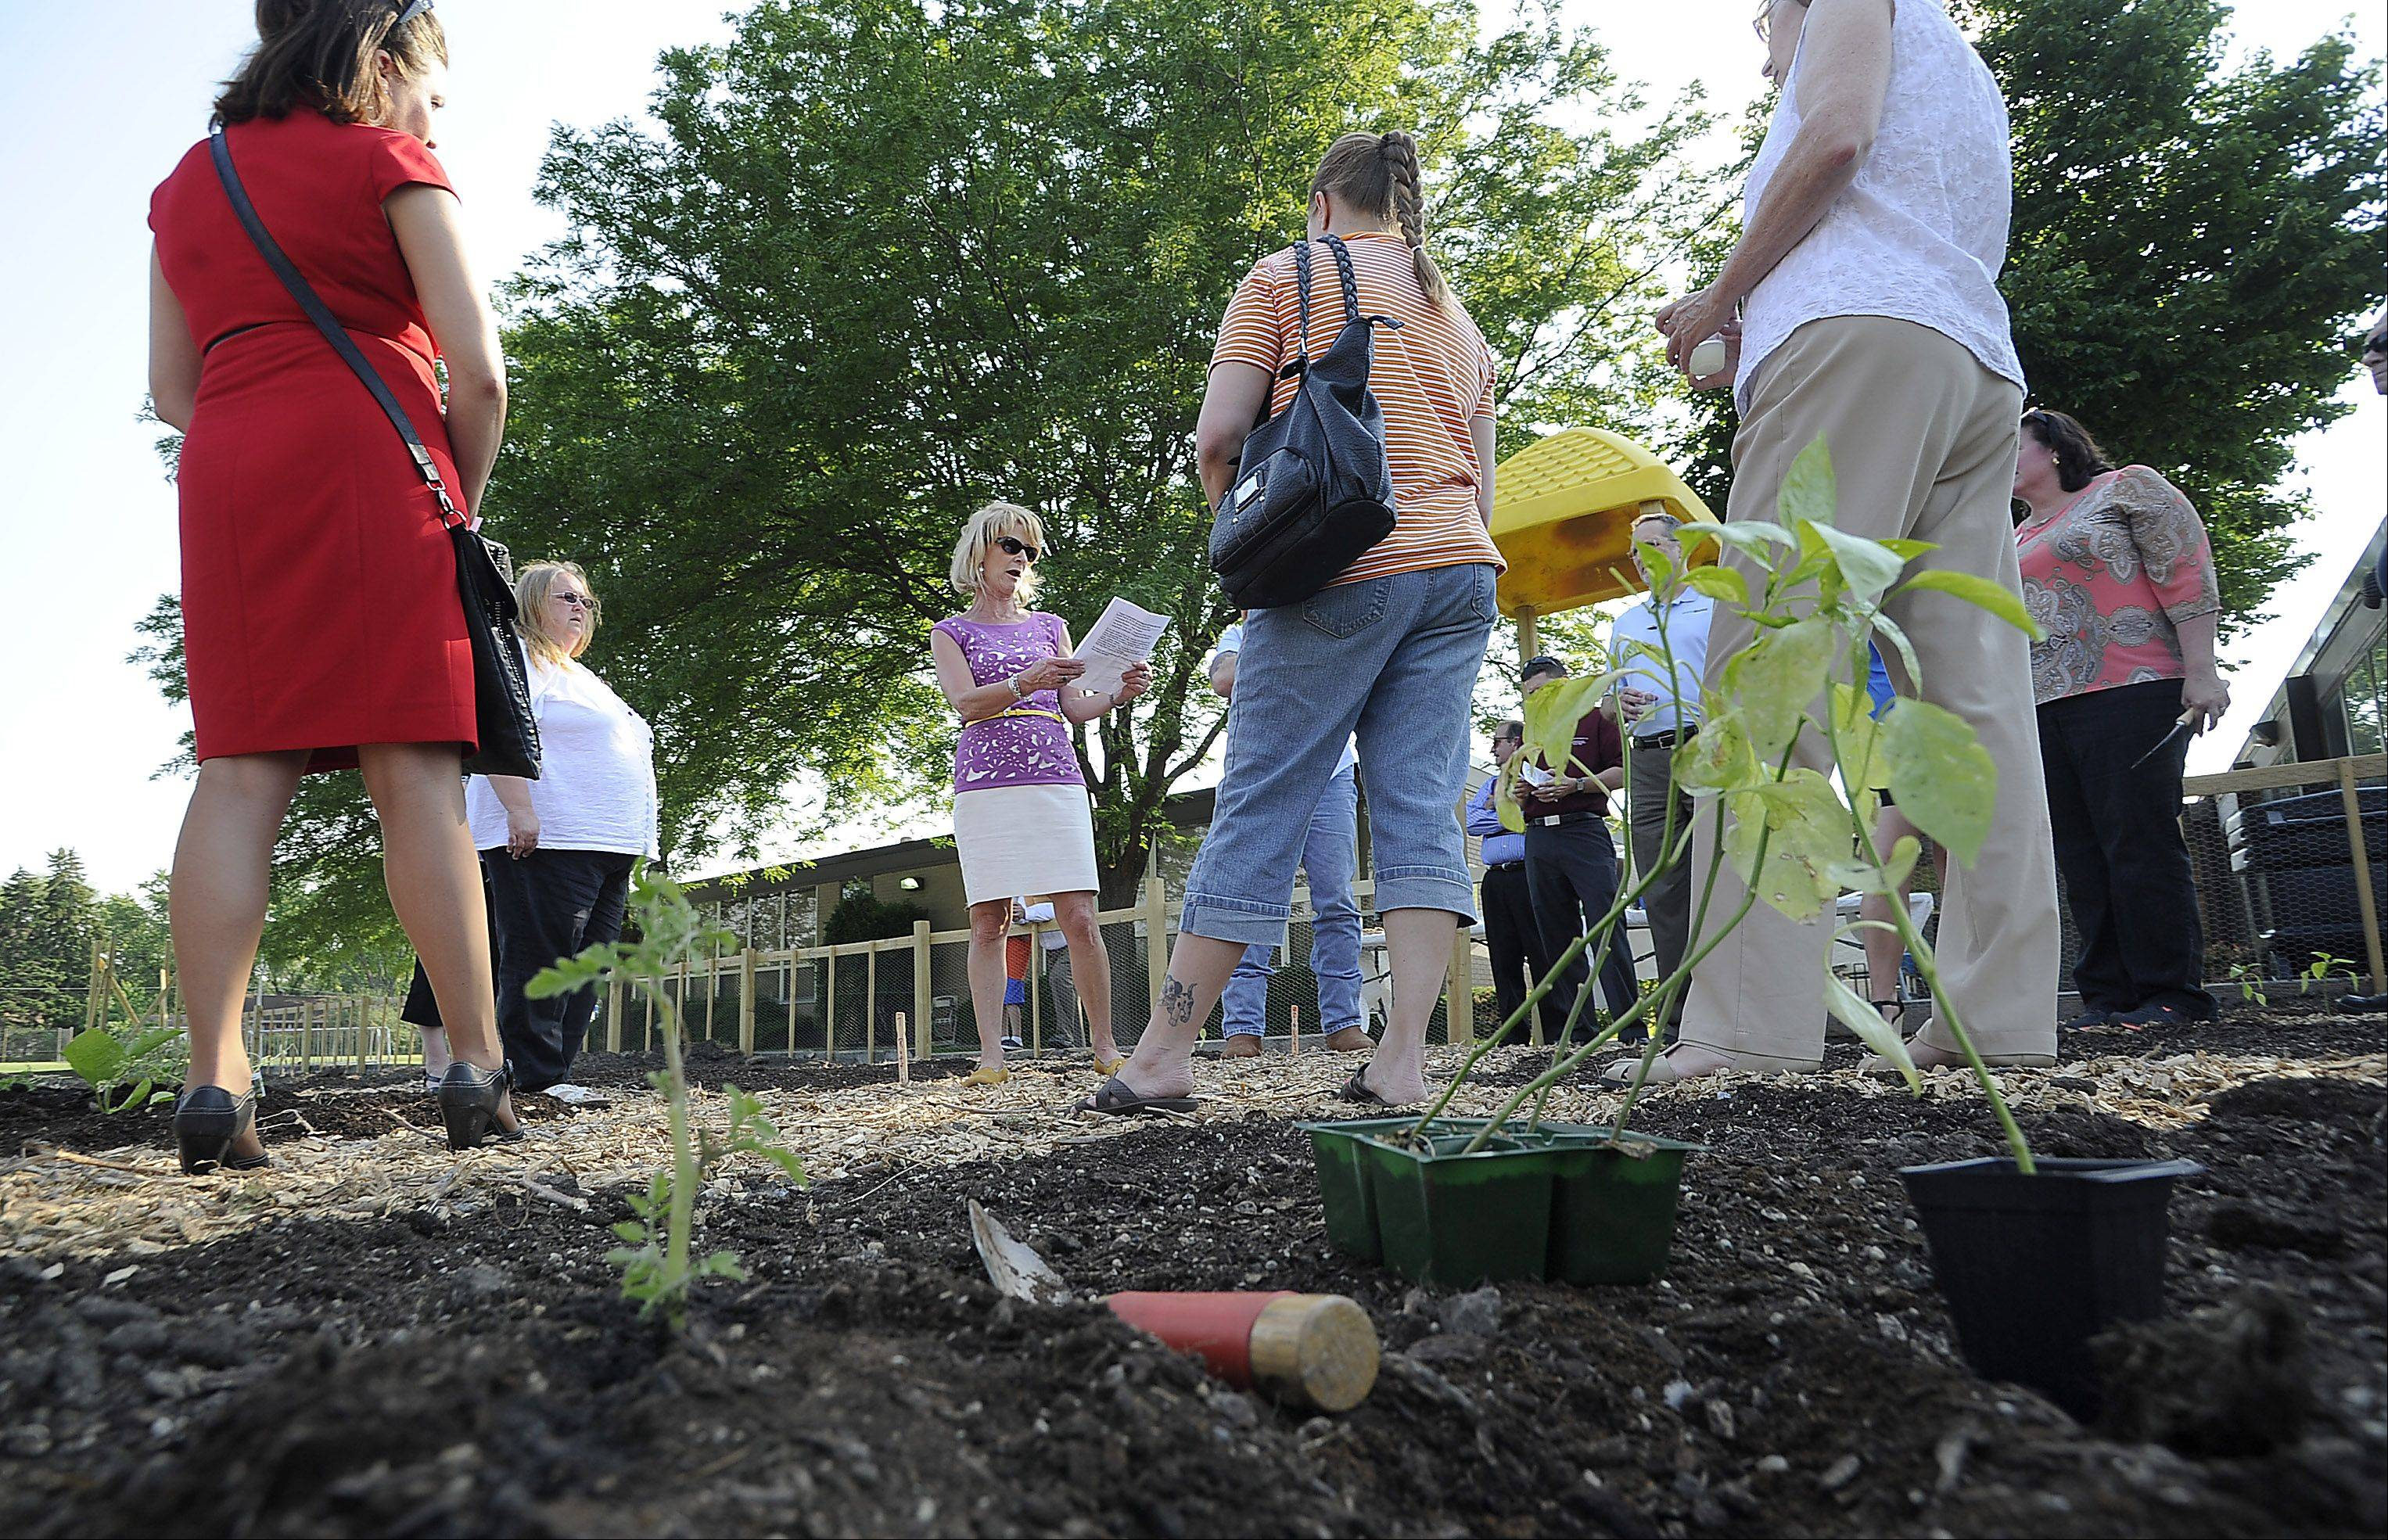 Kyndl Schuster, center, assistance superintendent for business services for District 26 River Trails, speaks to others at their After-Hours Networking Event at their new community and school garden at Euclid Elementary School on Thursday.